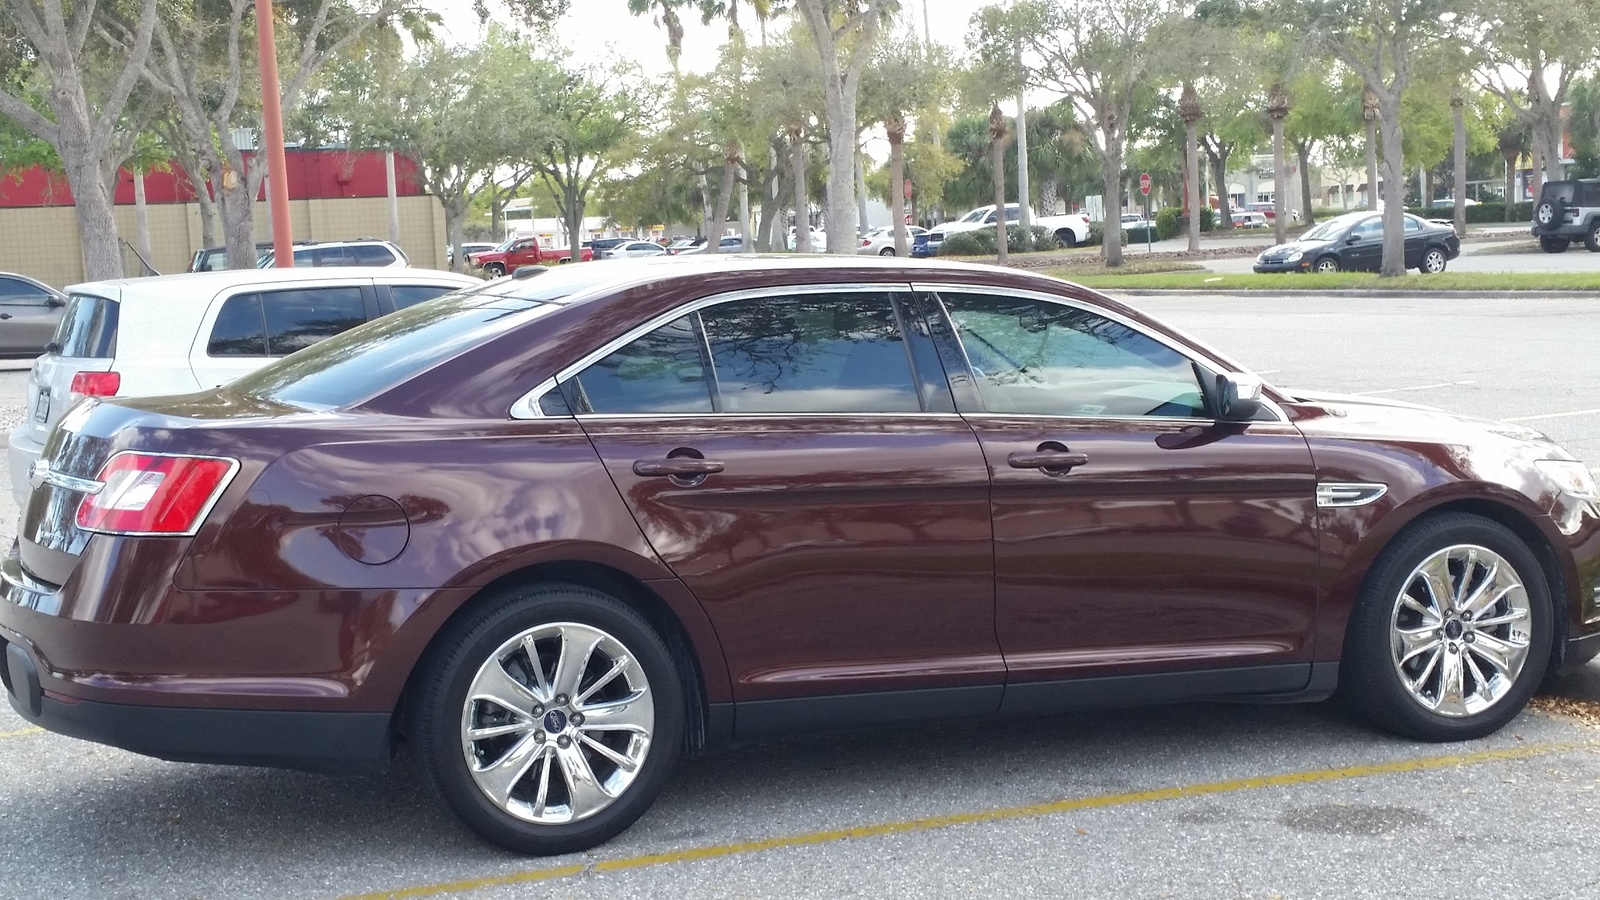 Where can i find the factory keyless entry code for 2012 taurus limited